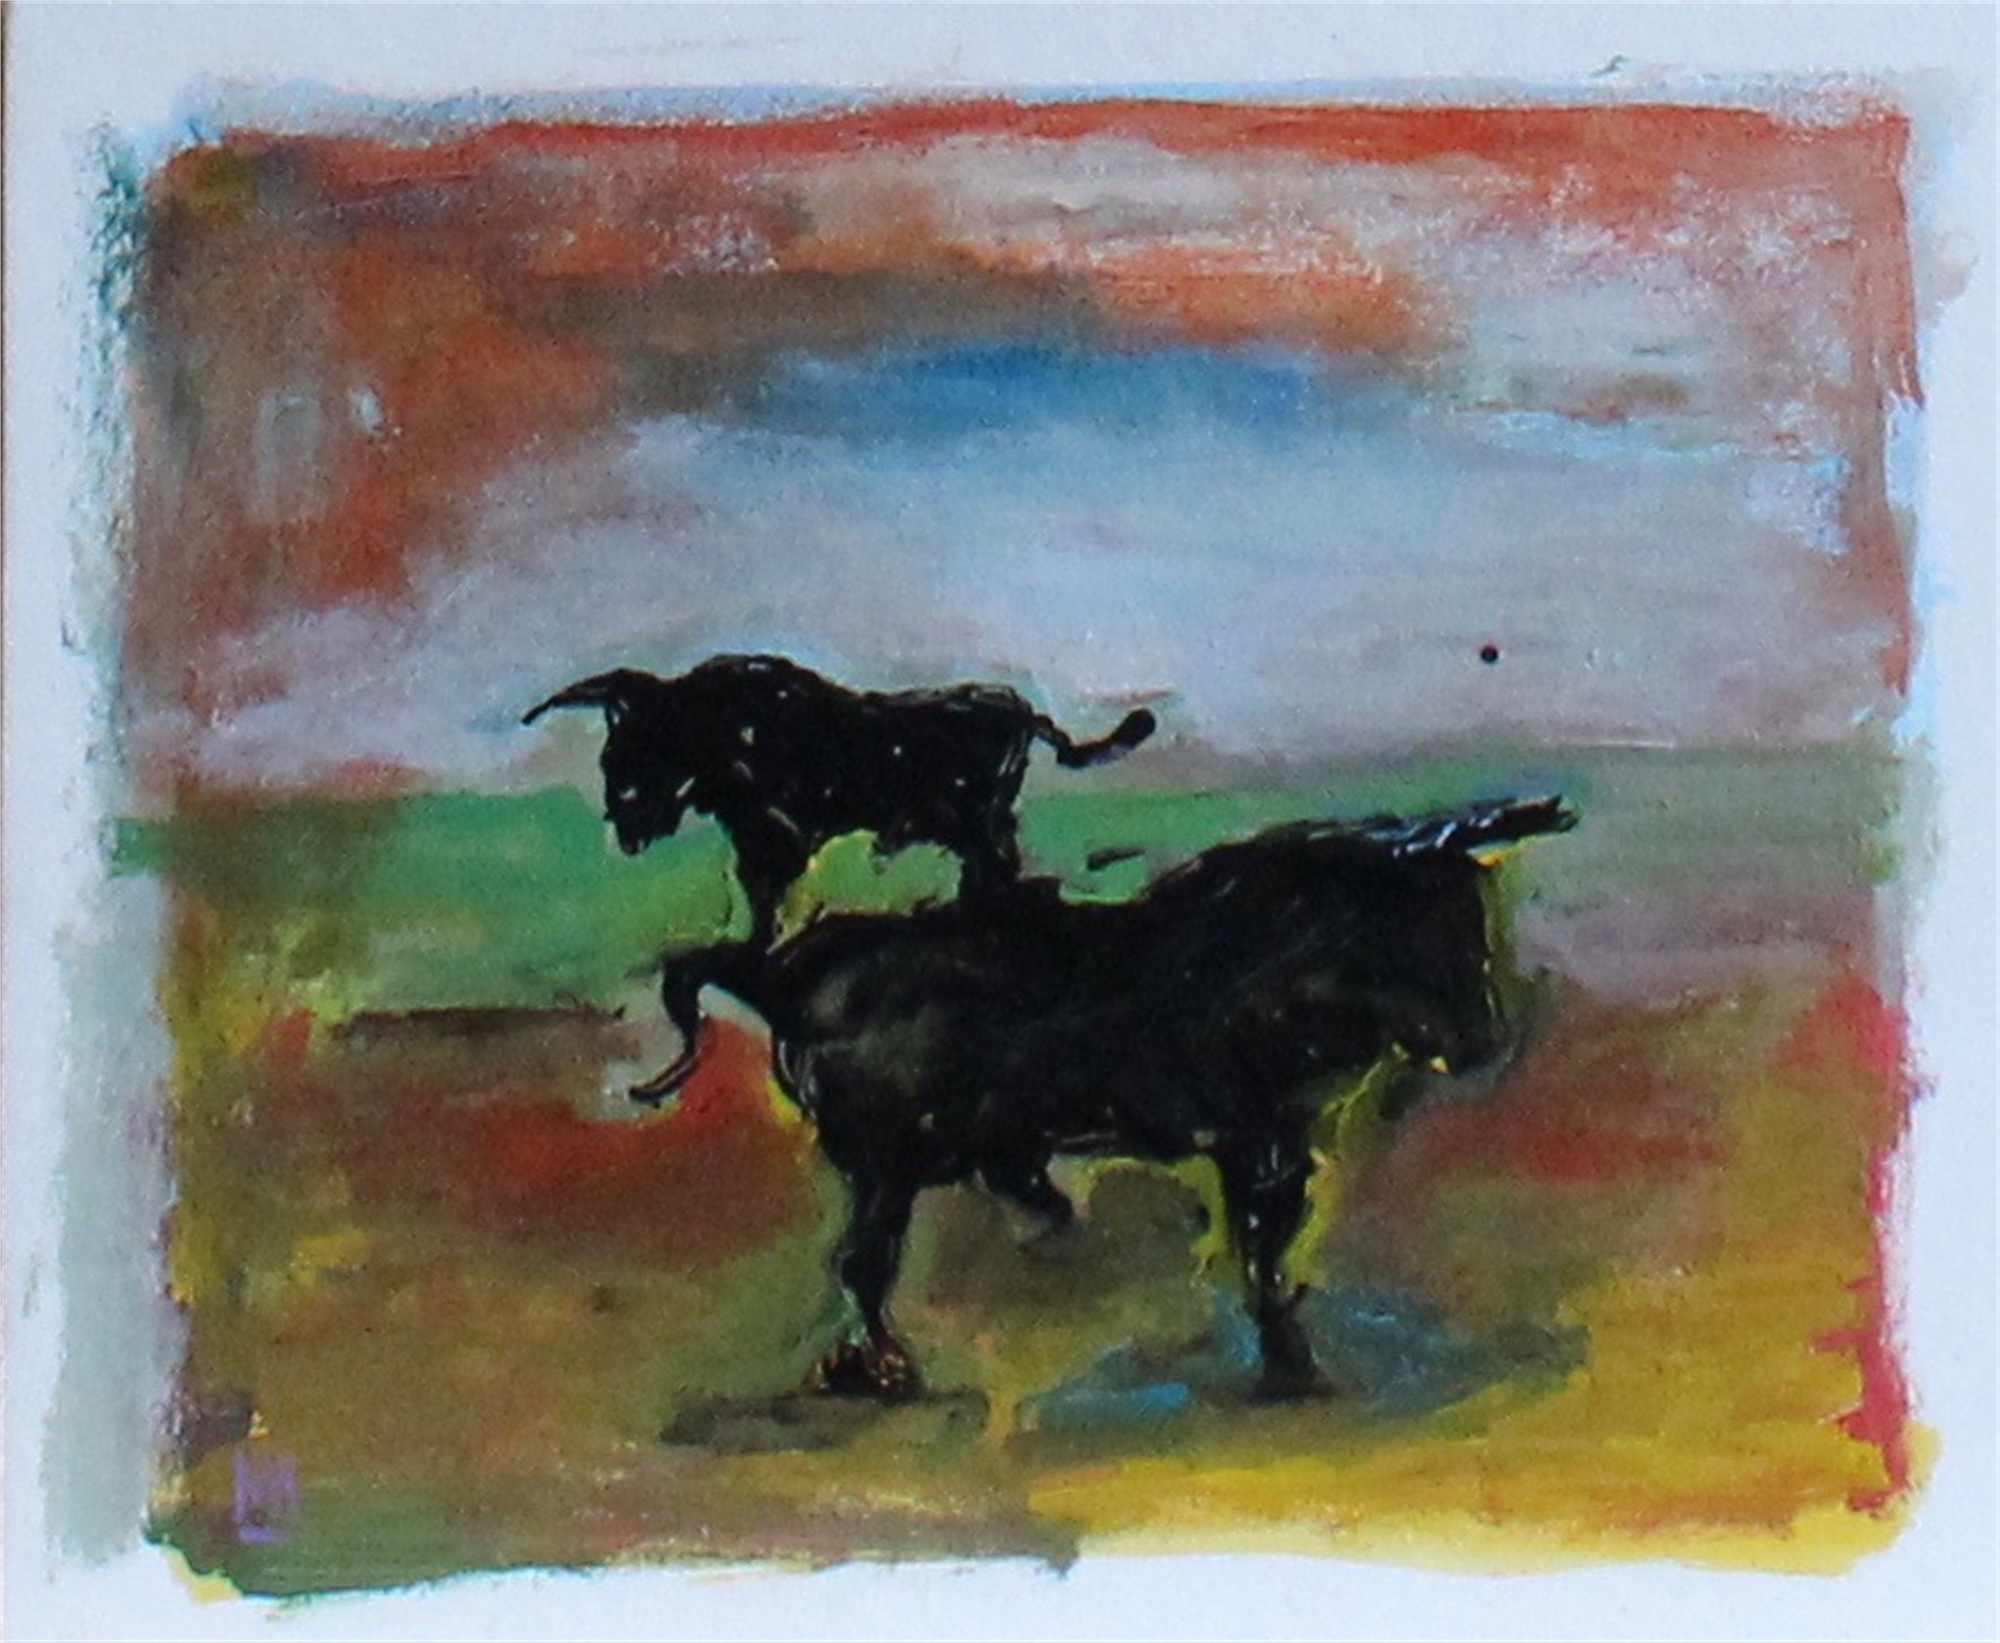 Two Bulls in a Field by Michael Snodgrass